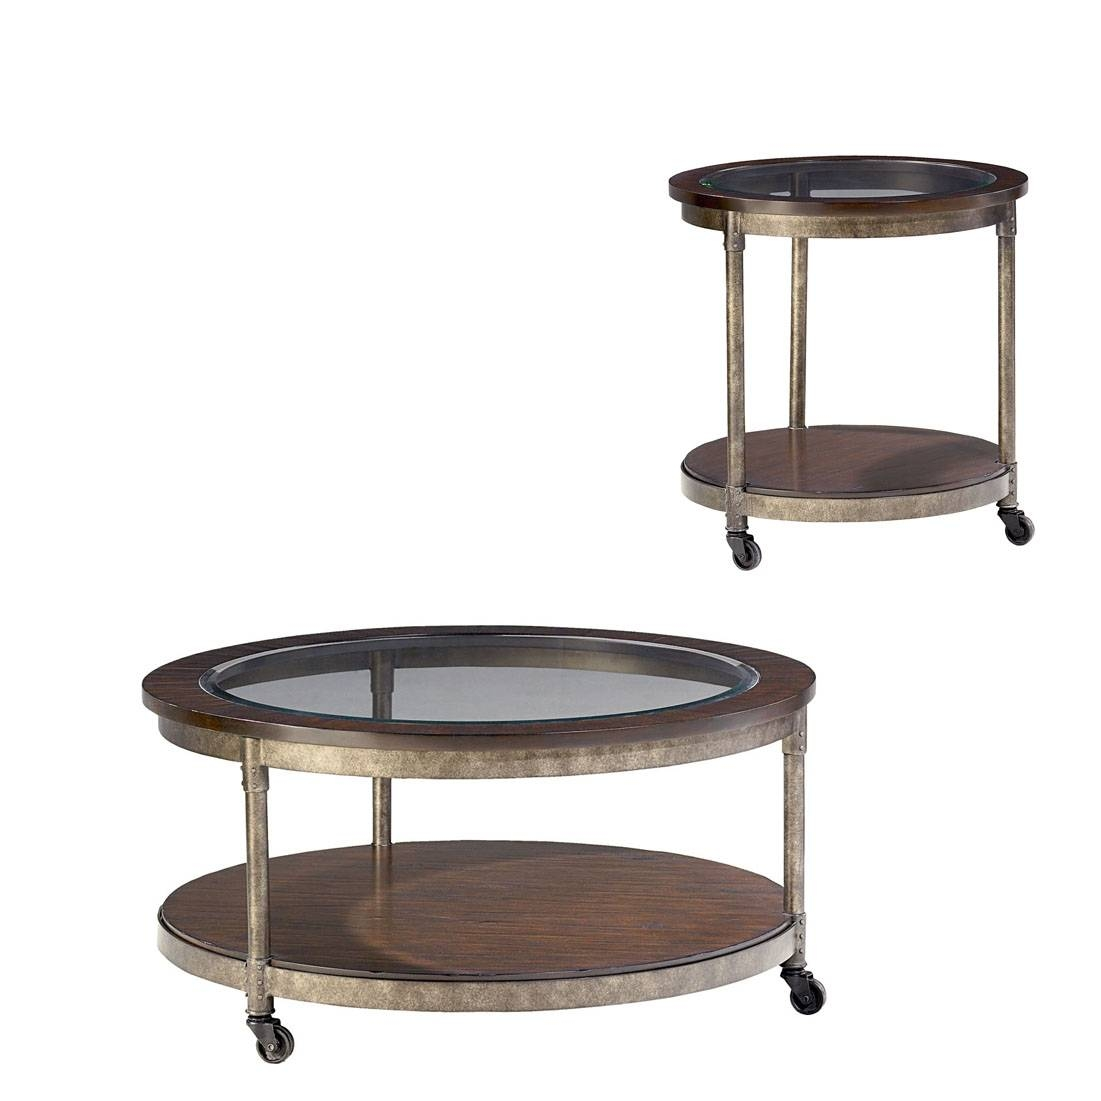 Hammary Structure Round 2 Piece Coffee Table Set - Beyond Stores for 2 Piece Coffee Table Sets (Image 24 of 30)